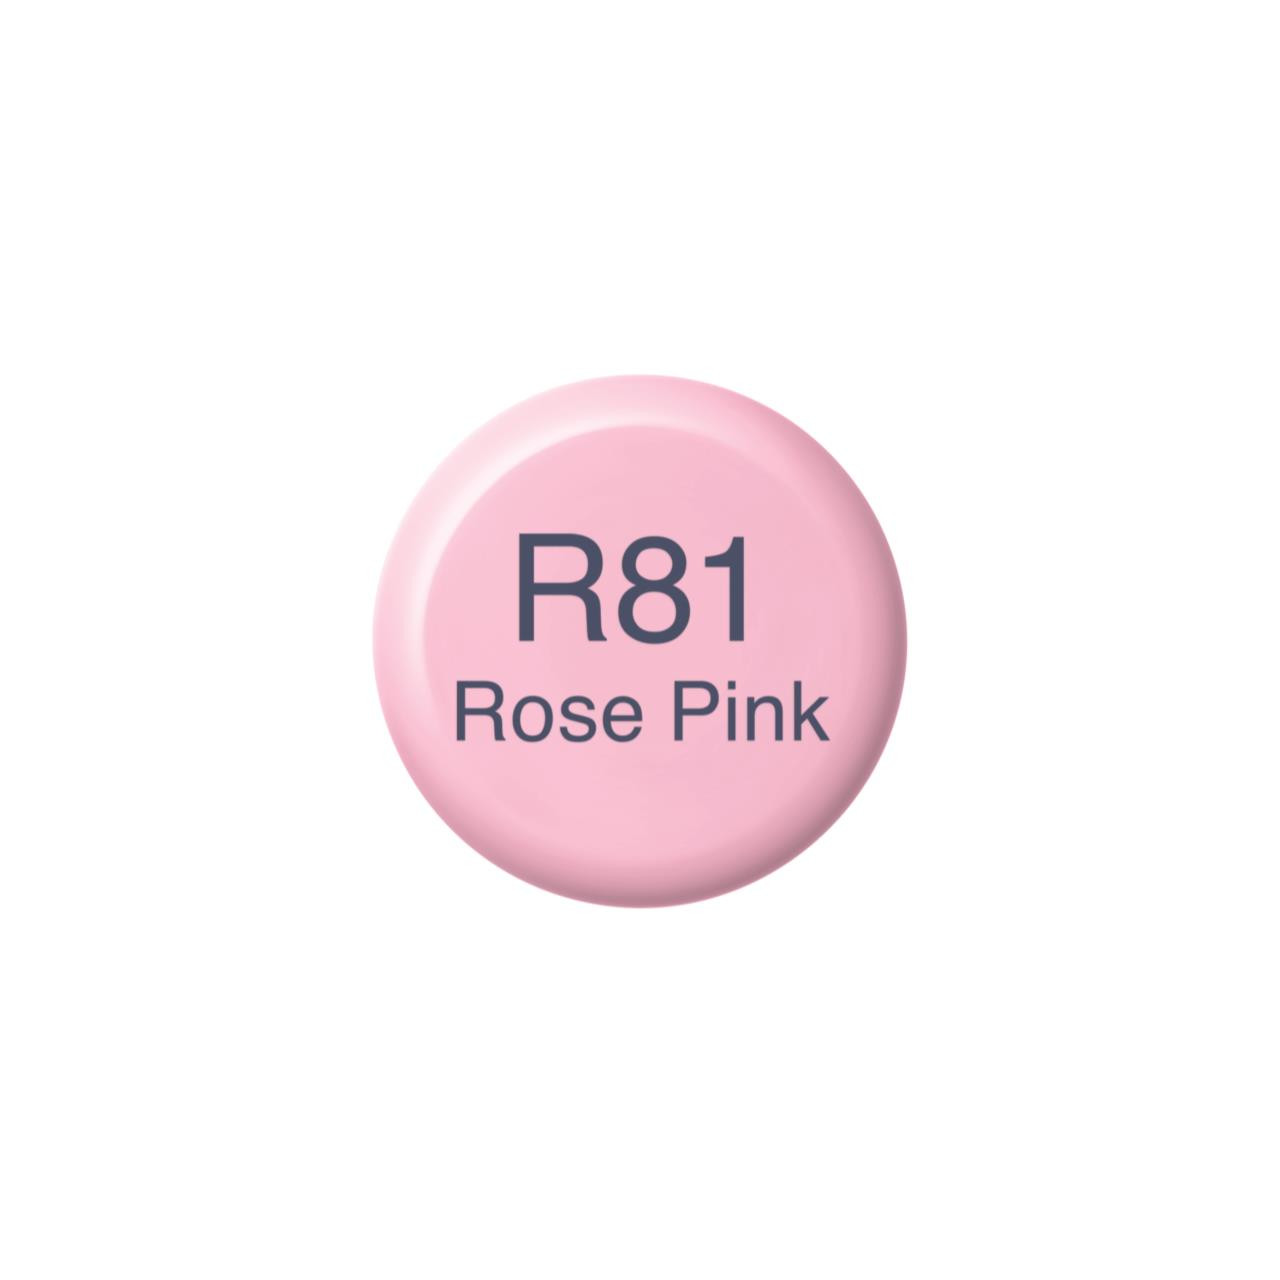 R81 Rose Pink, Copic Ink - 4511338057629